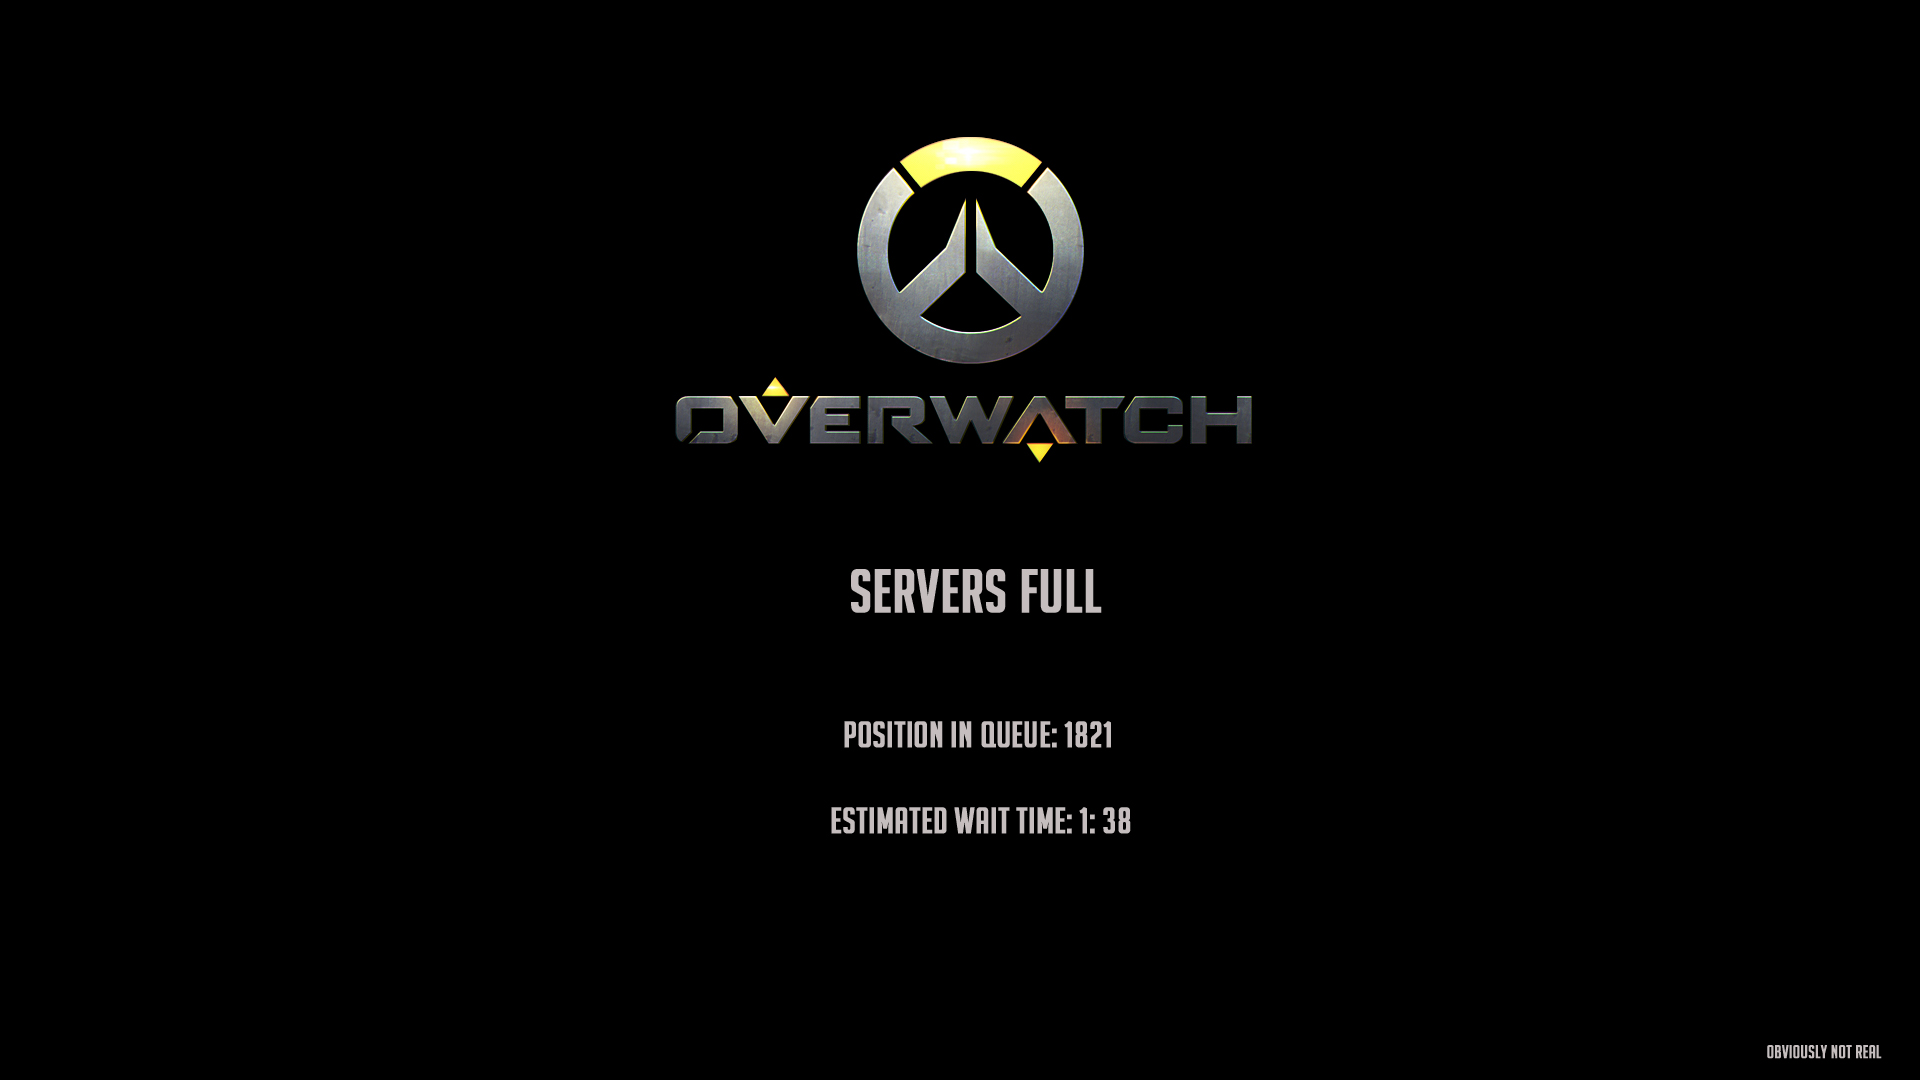 Overwatch - The Launch - Sci-fi and Fantasy Network